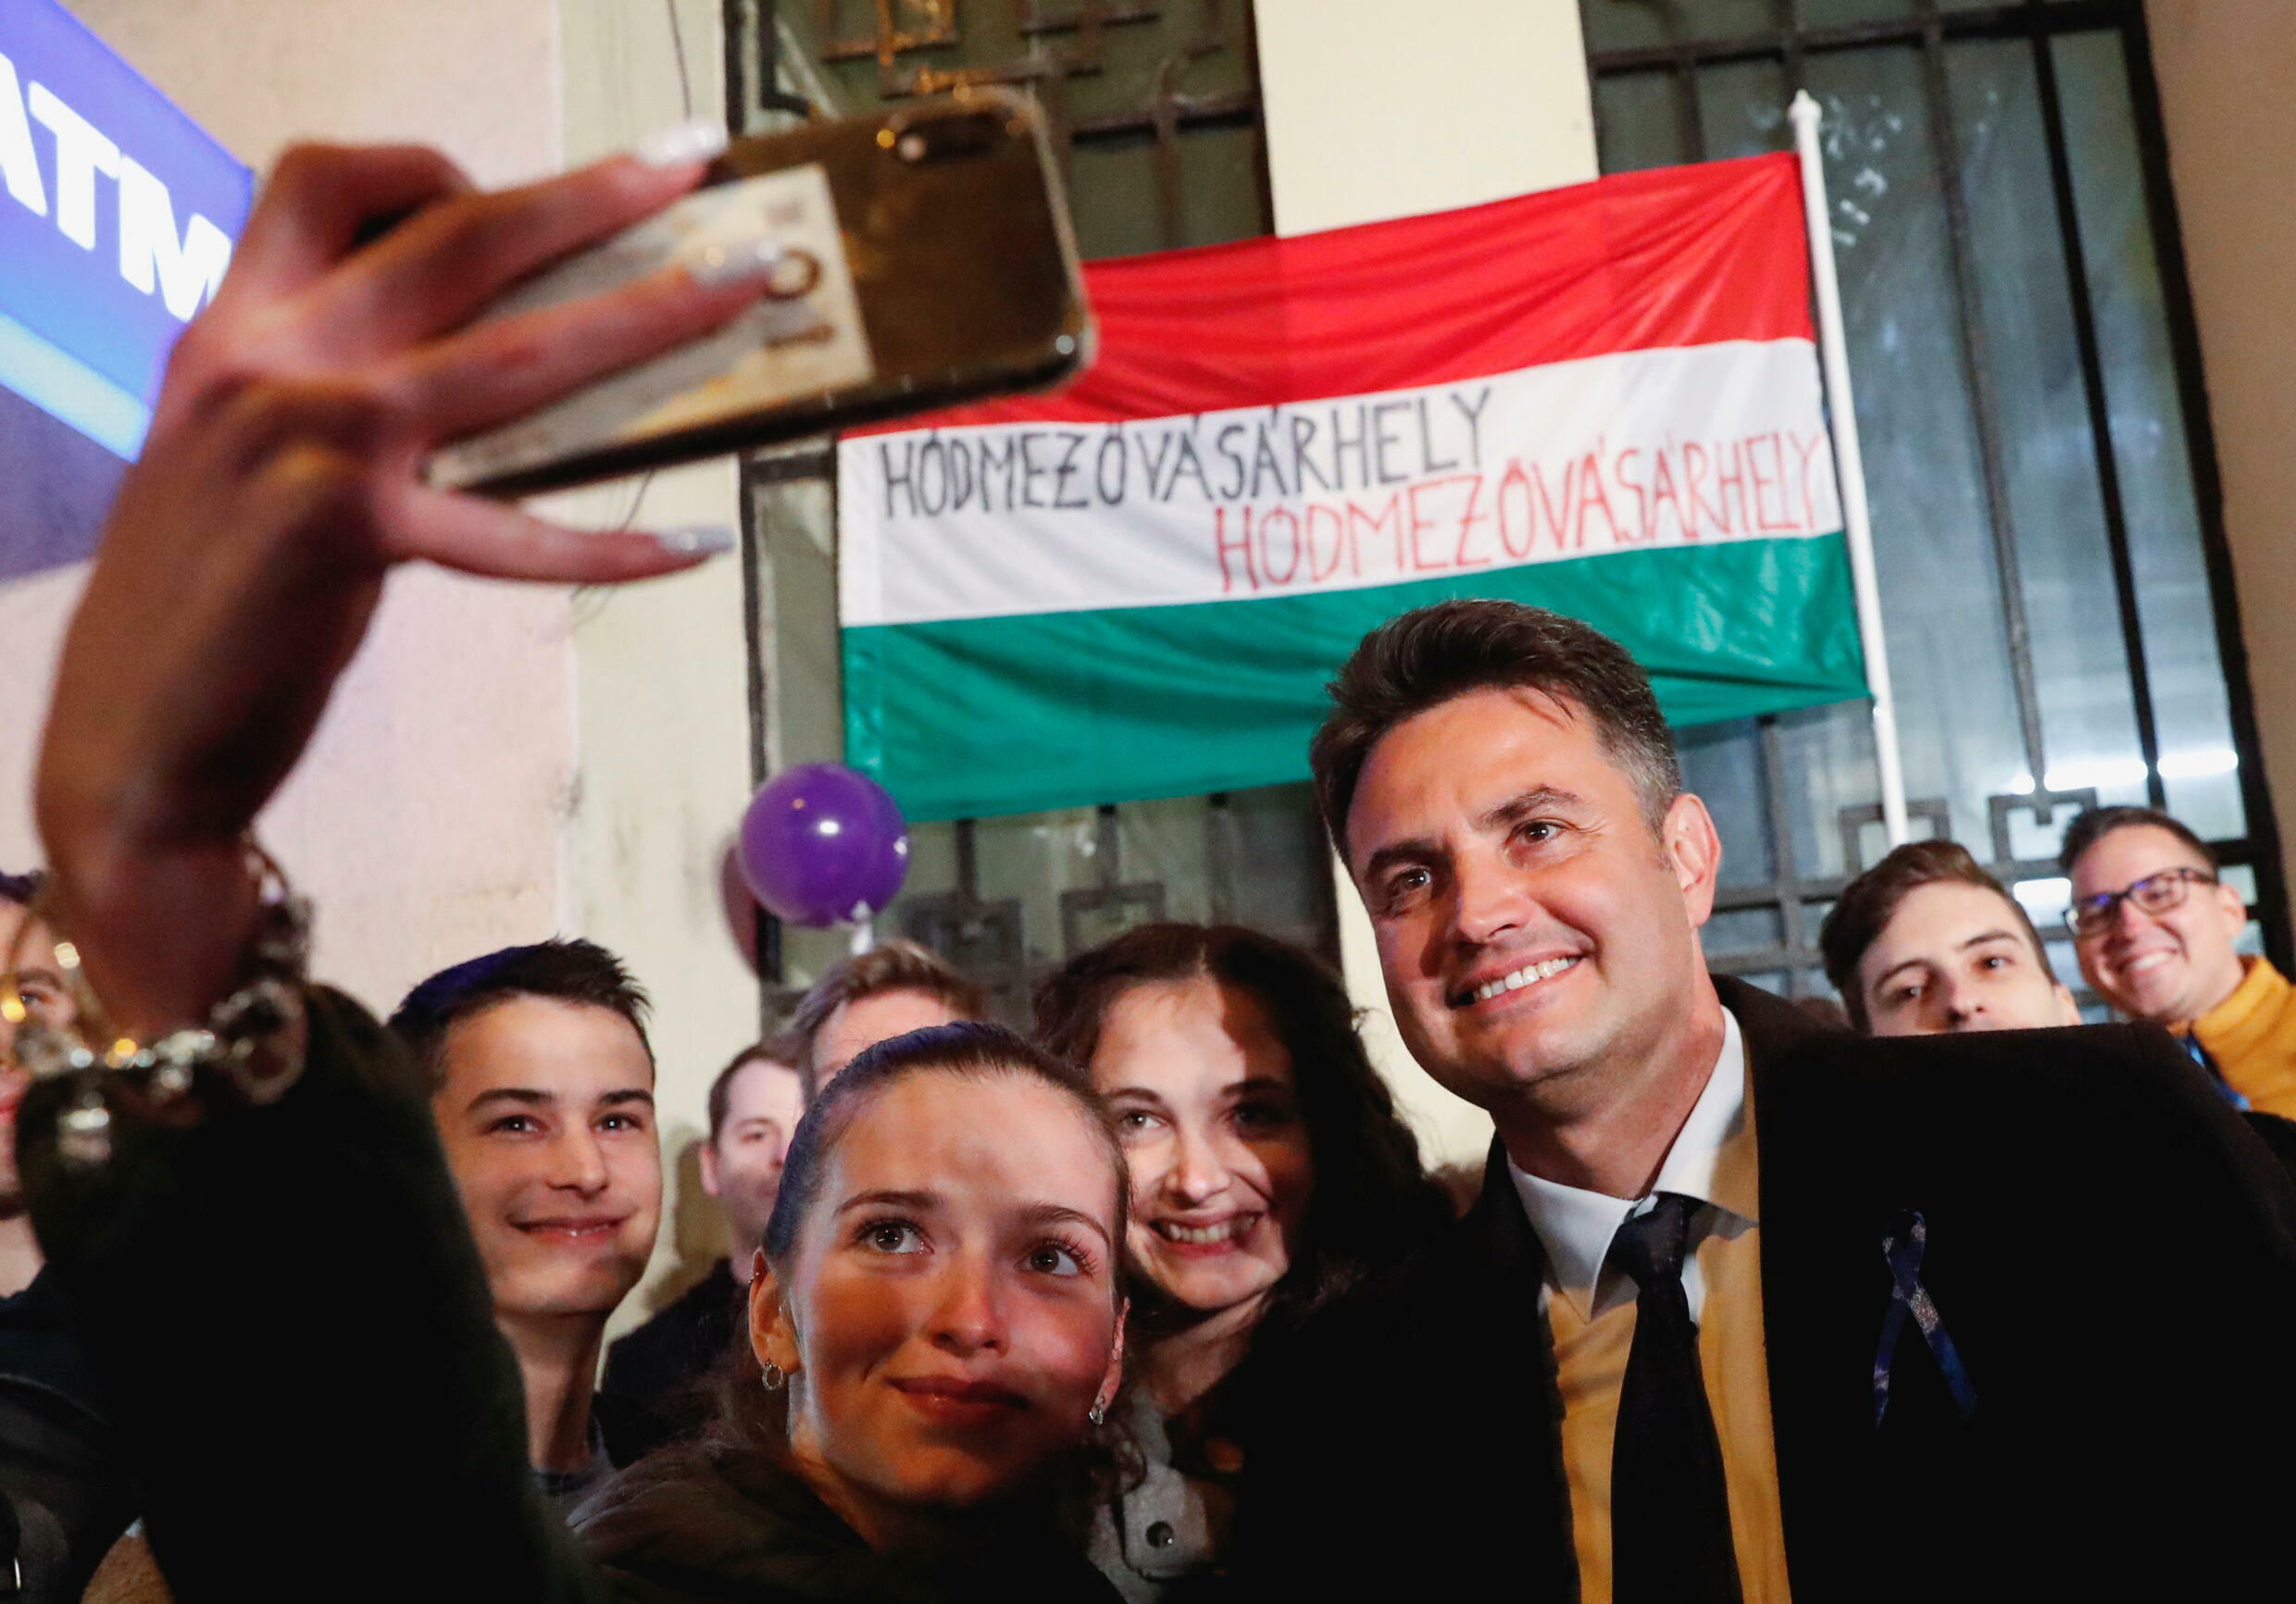 2021-10-17T194724Z_1095472634_RC2VBQ9ZWUG2_RTRMADP_3_HUNGARY-ELECTION-OPPOSITION